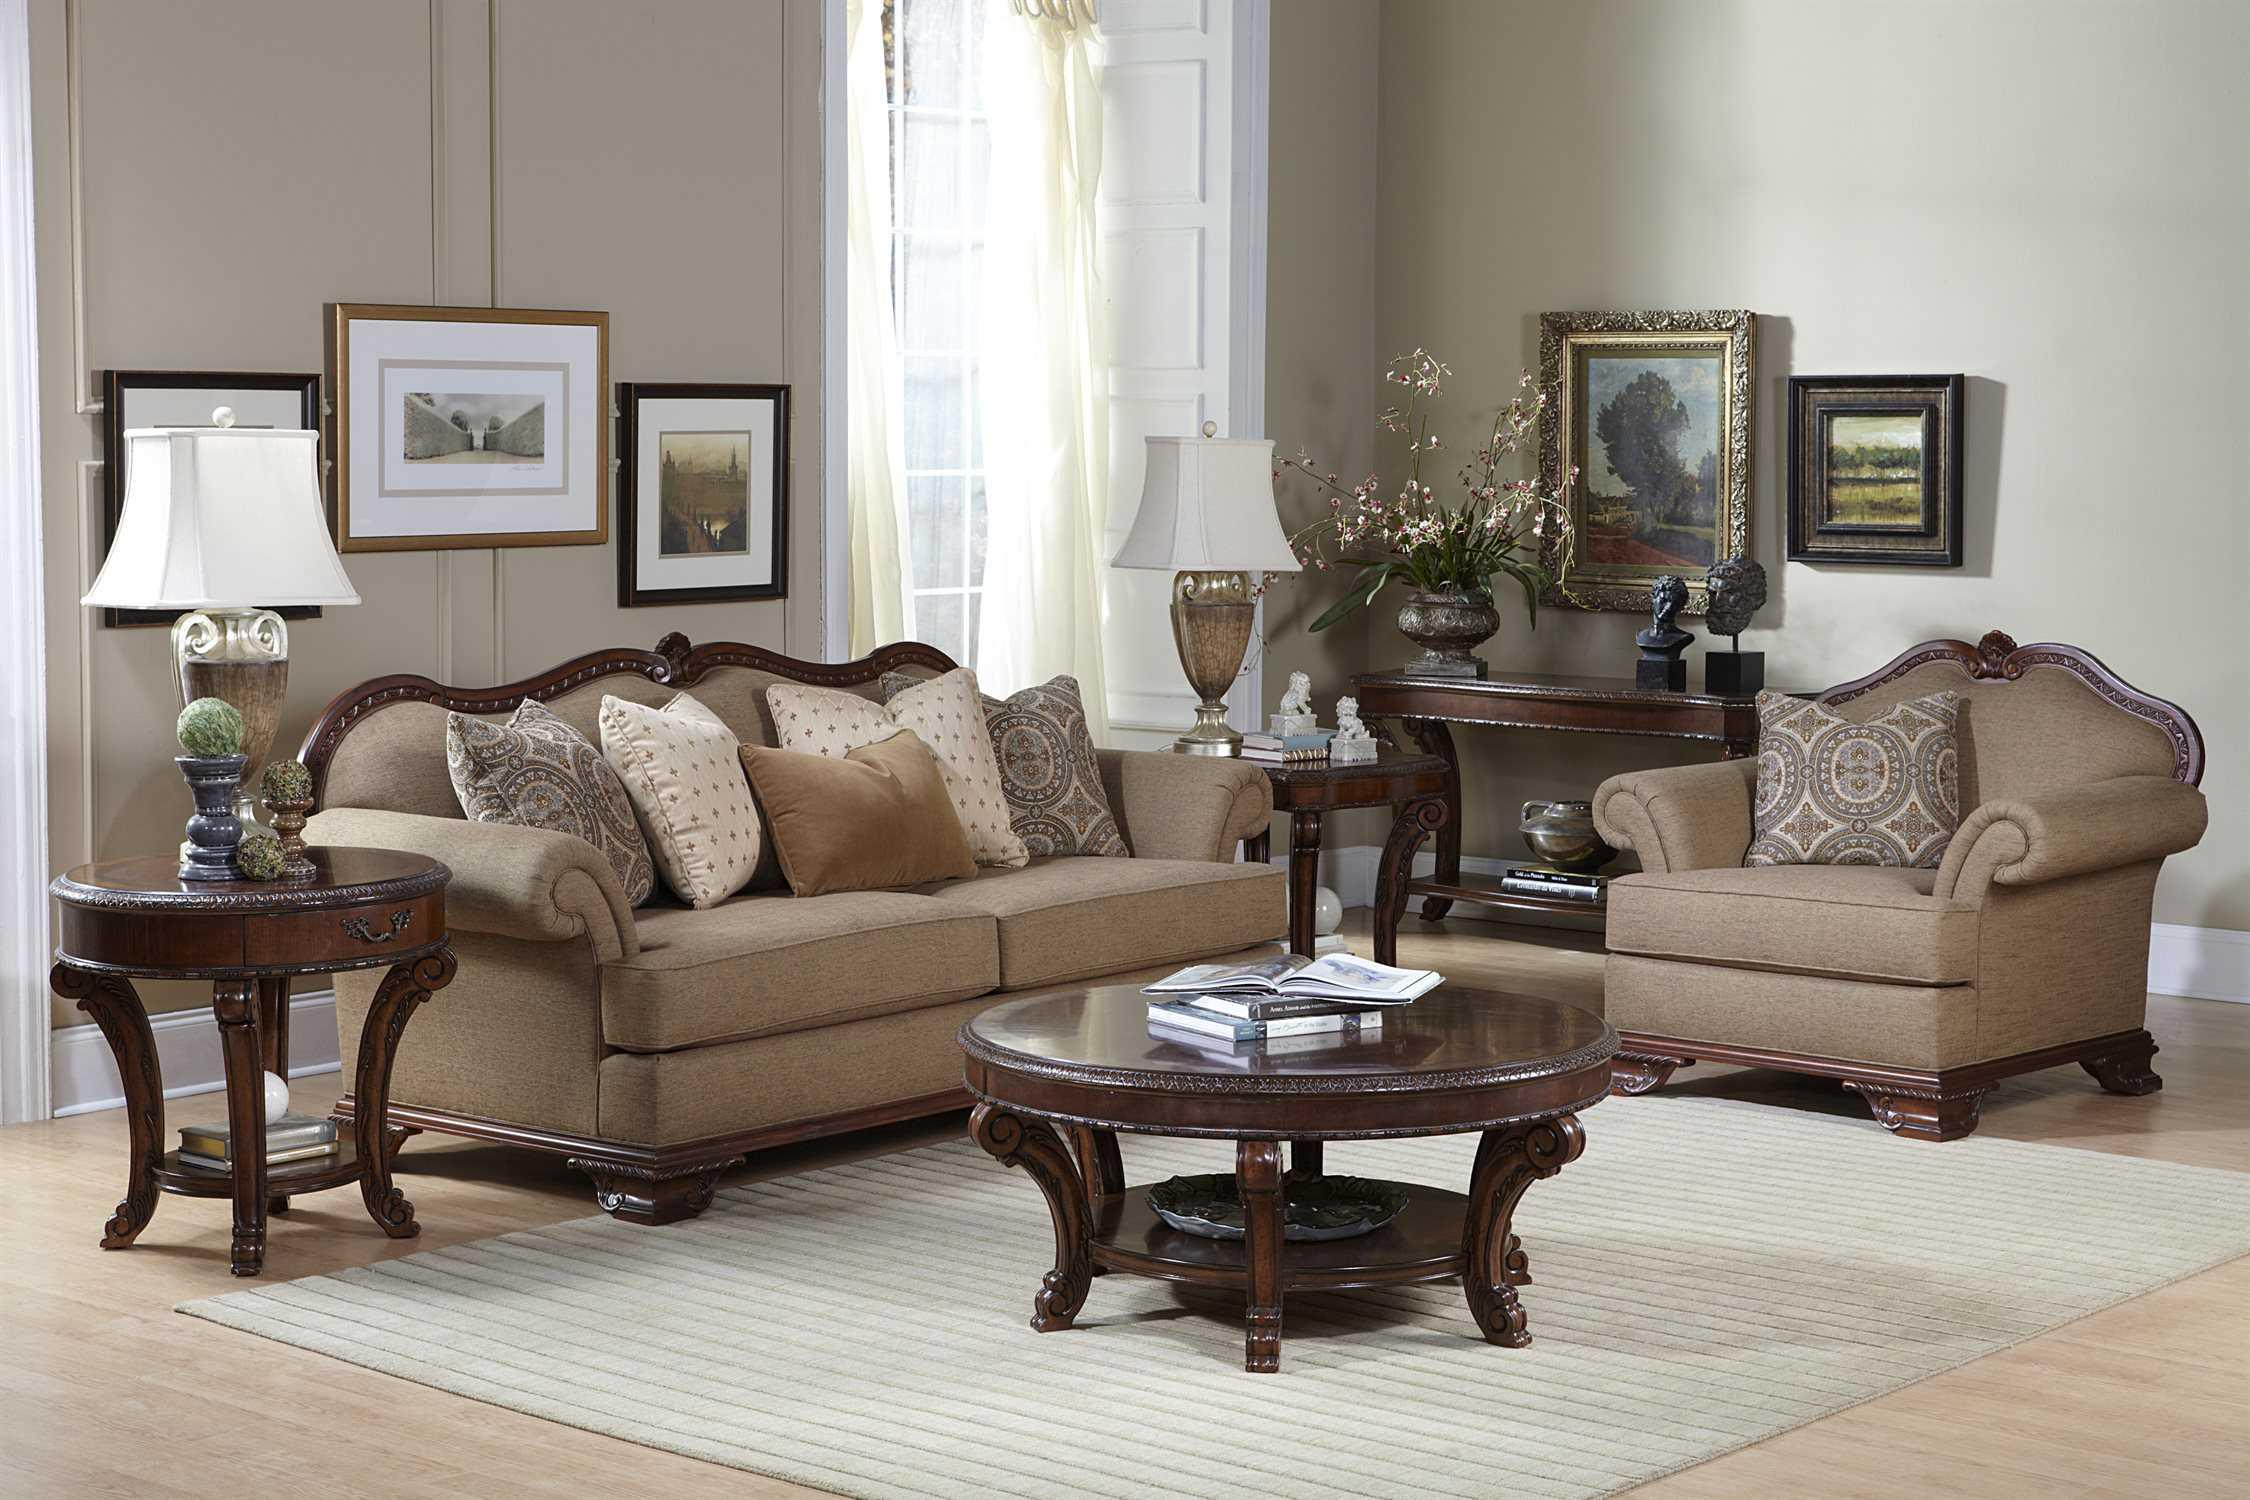 A.R.T. Furniture Old World Living Room Set